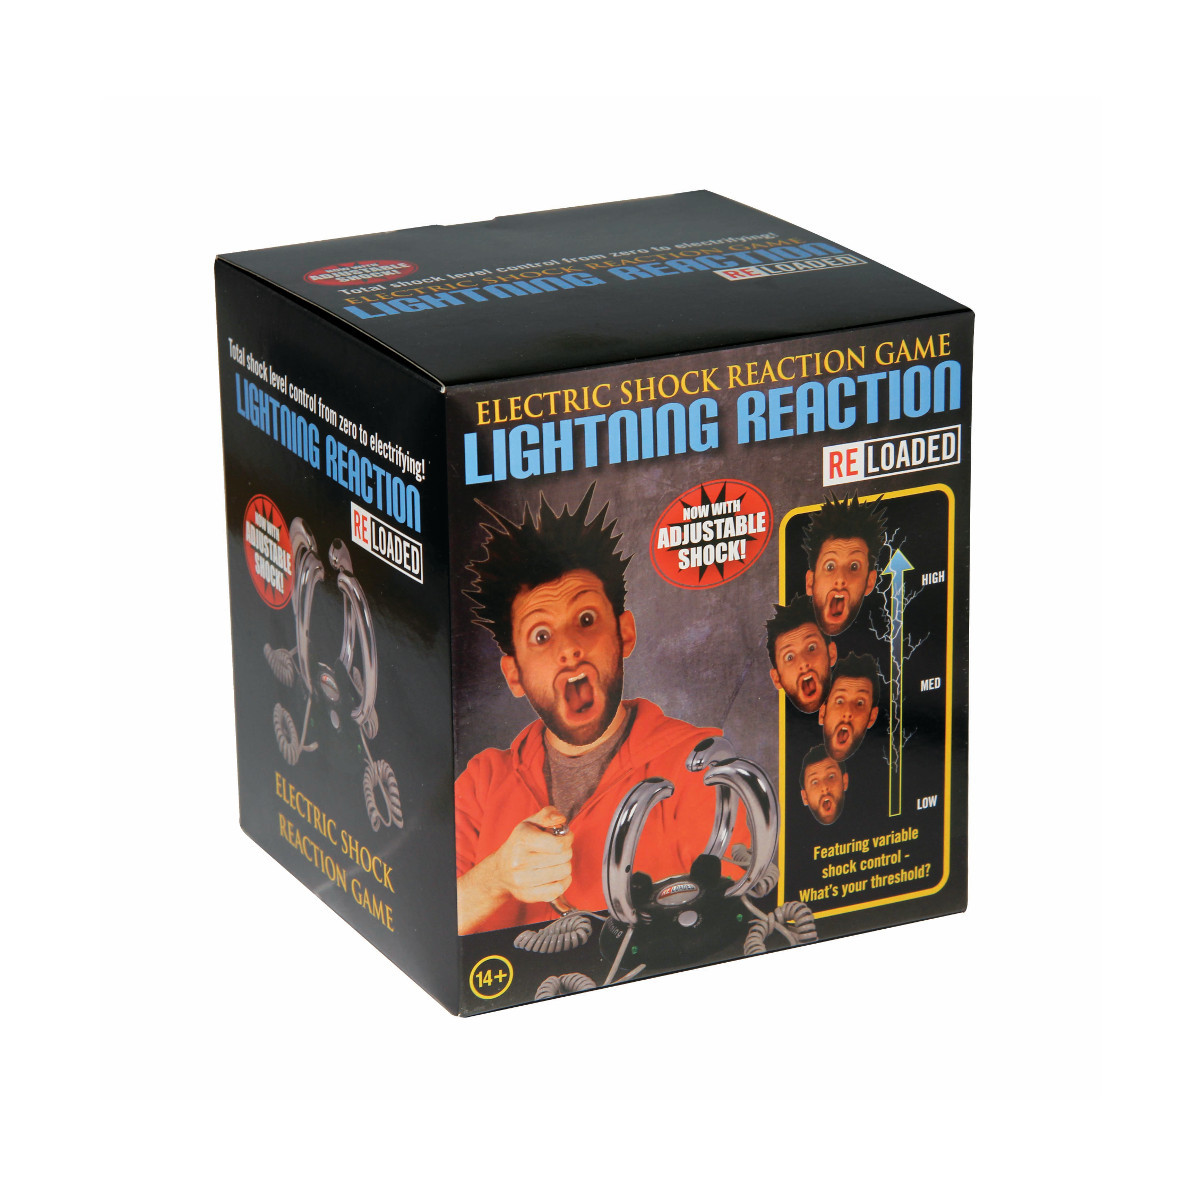 LIGHTNING REACTION MULTIPLAYER GAME